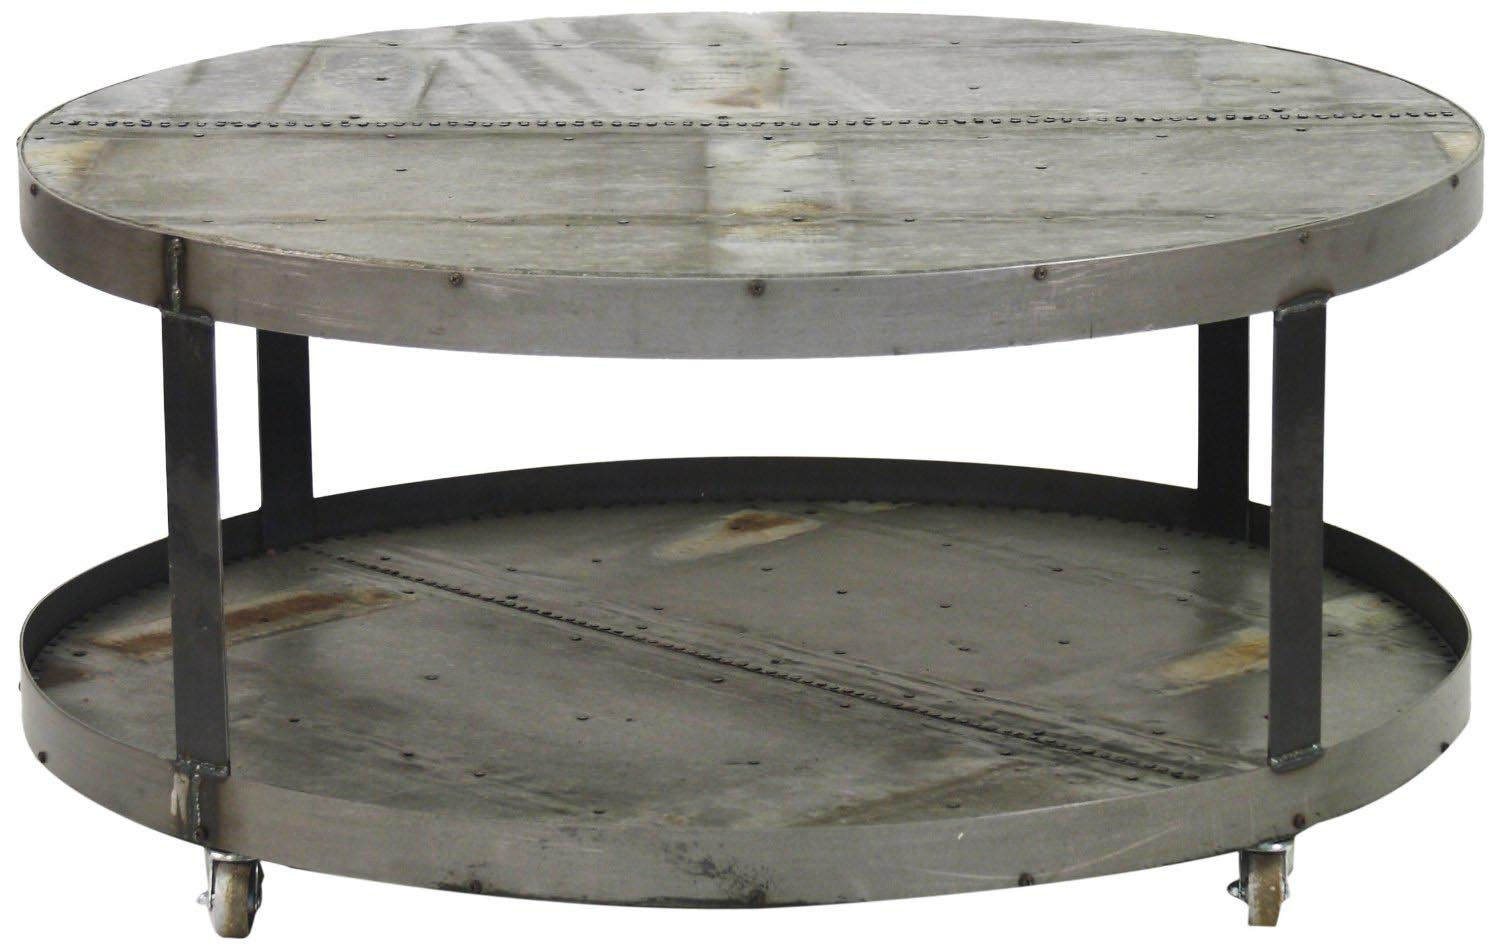 Oversized round coffee table coffee table design ideas Round coffee tables